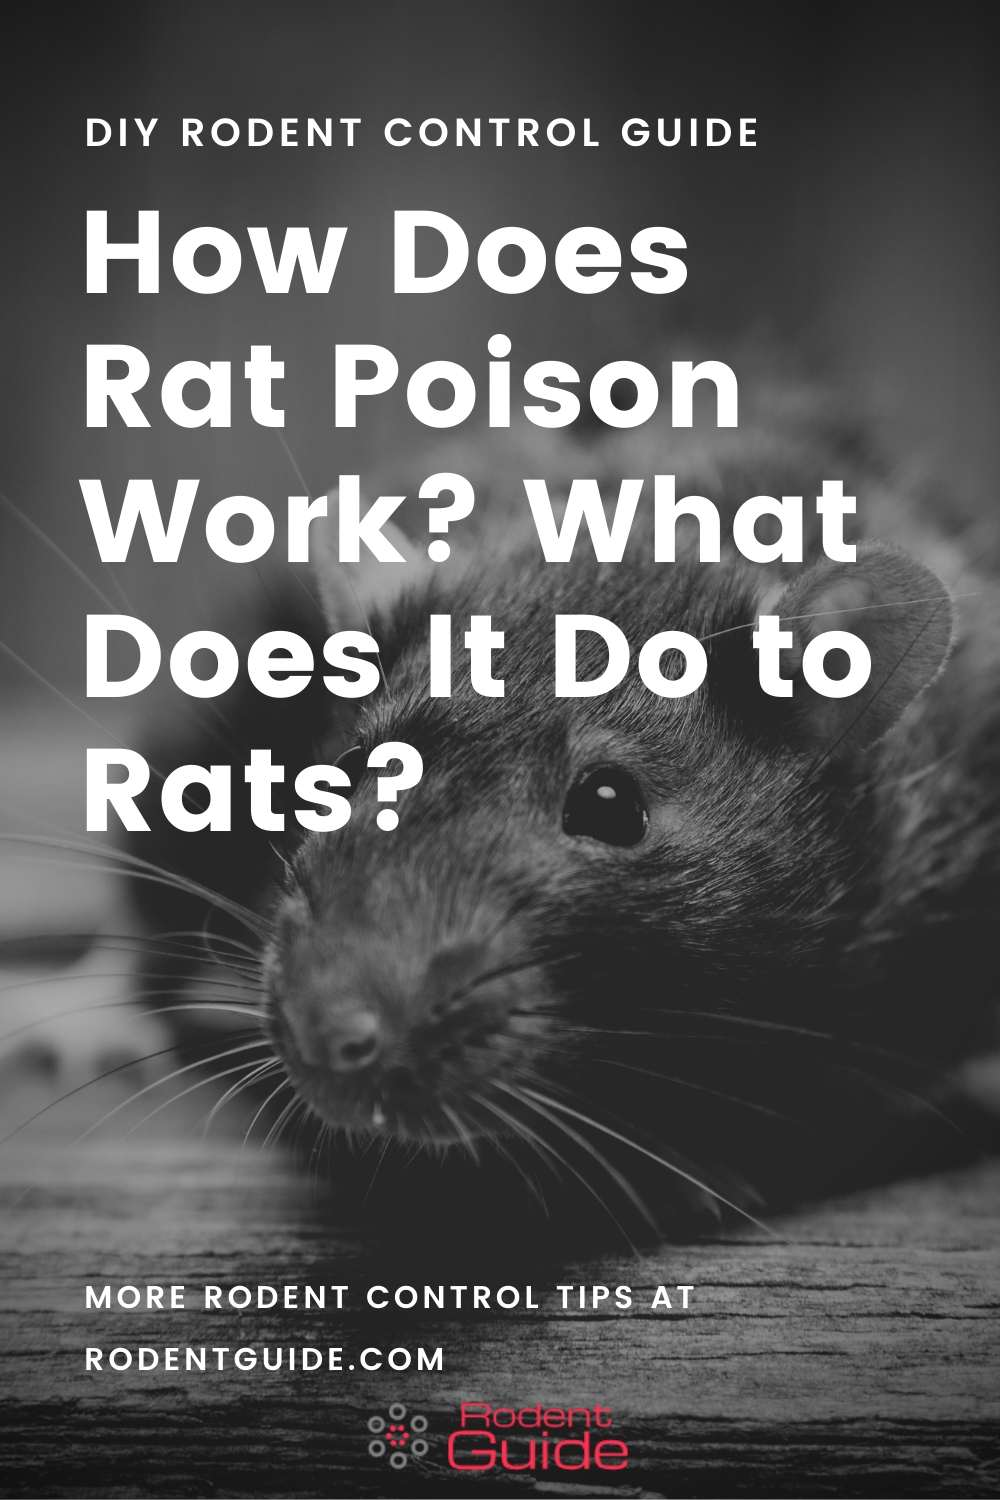 How Does Rat Poison Work